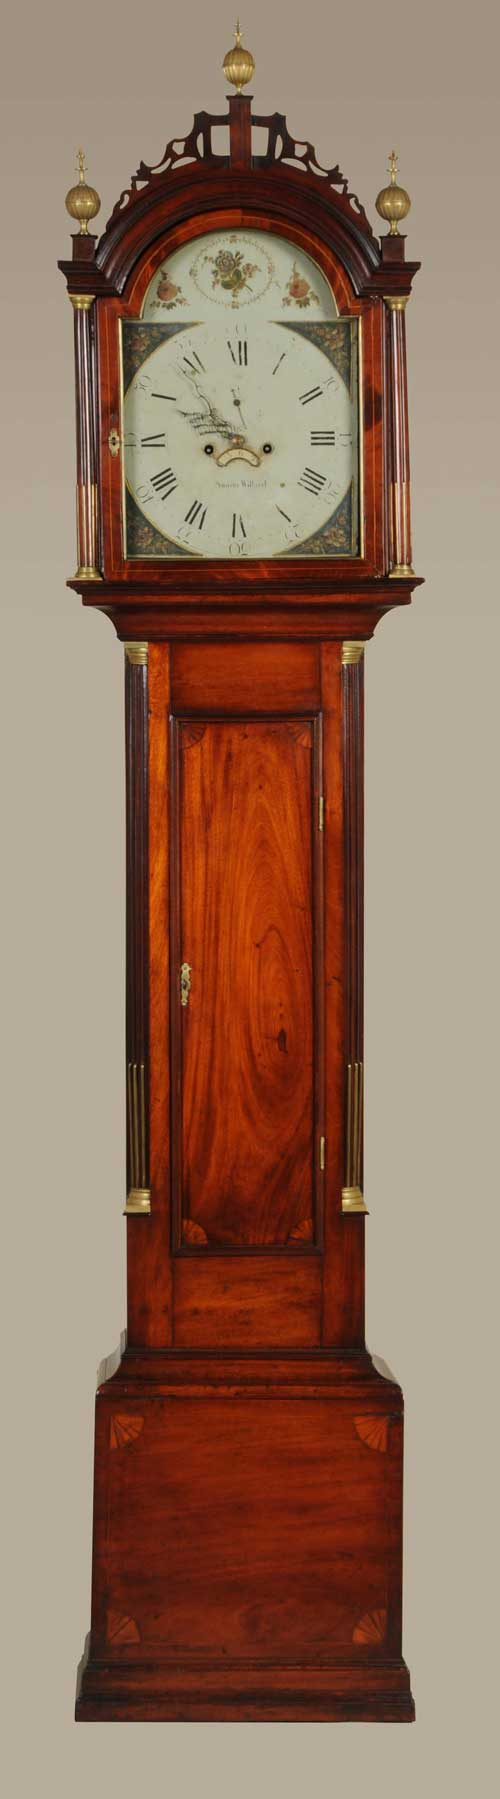 """Circa-1785 Massachusetts Federal tall clock by Simon Willard, figured mahogany Roxbury case with line and fan inlays. Original Simon Willard label. 92½ inches tall with iron dial signed """"Simon Willard."""" Provenance: John and Barbara Delaney. Estimate $40,000-$60,000. Image courtesy Morphy Auctions."""